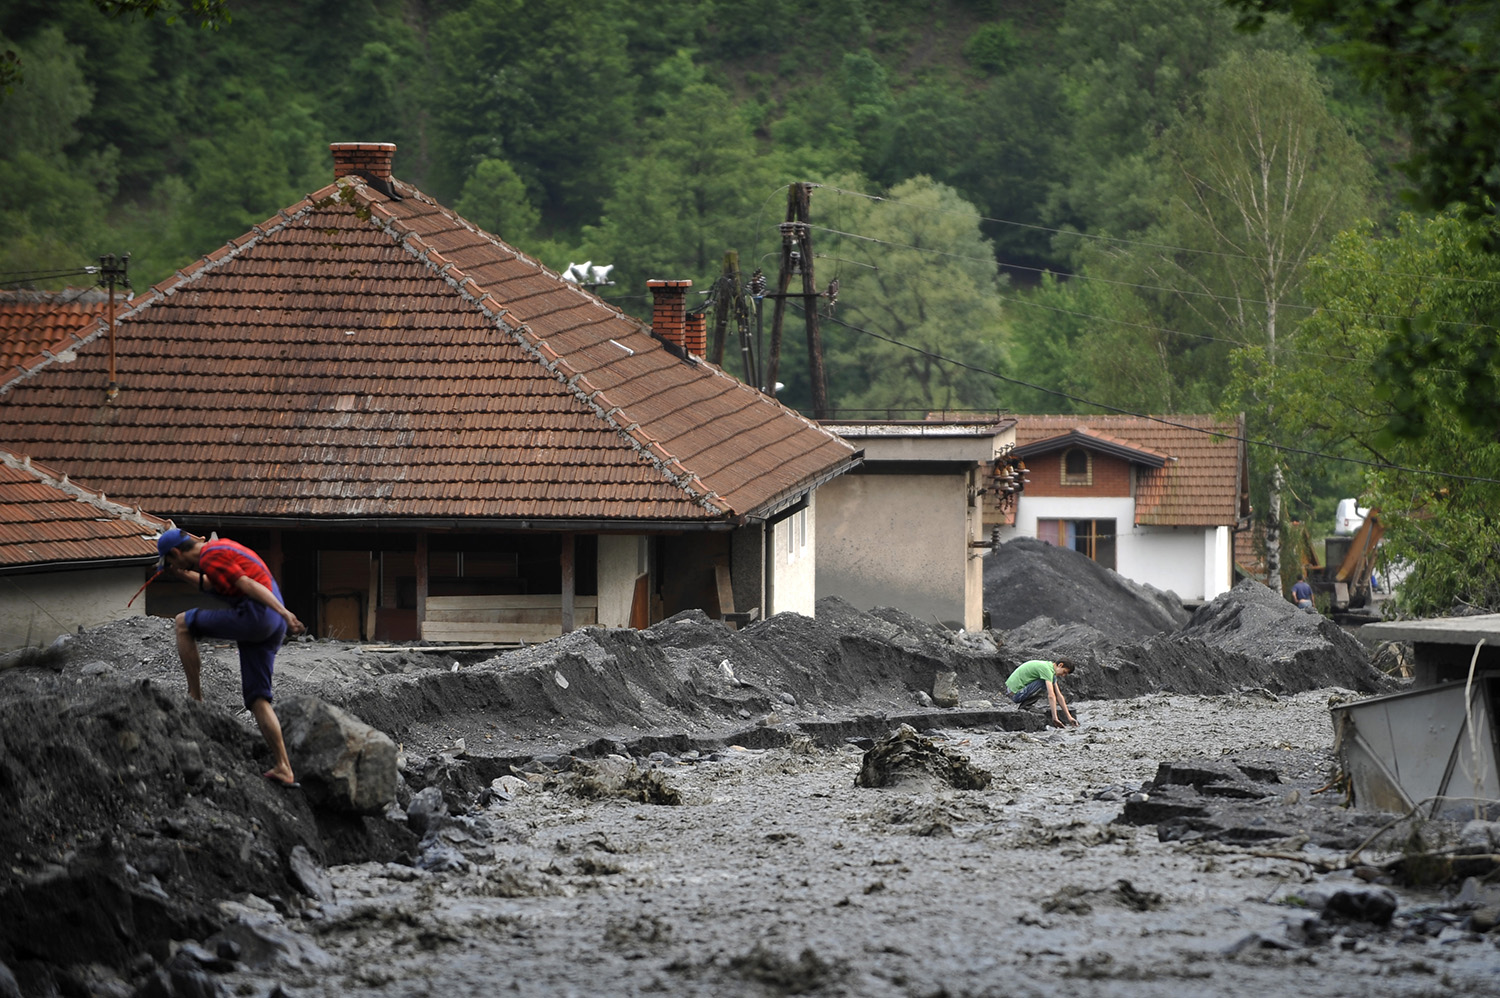 A view of a landslide and floodwaters around houses in the village of Topcic Polje near Zenica.